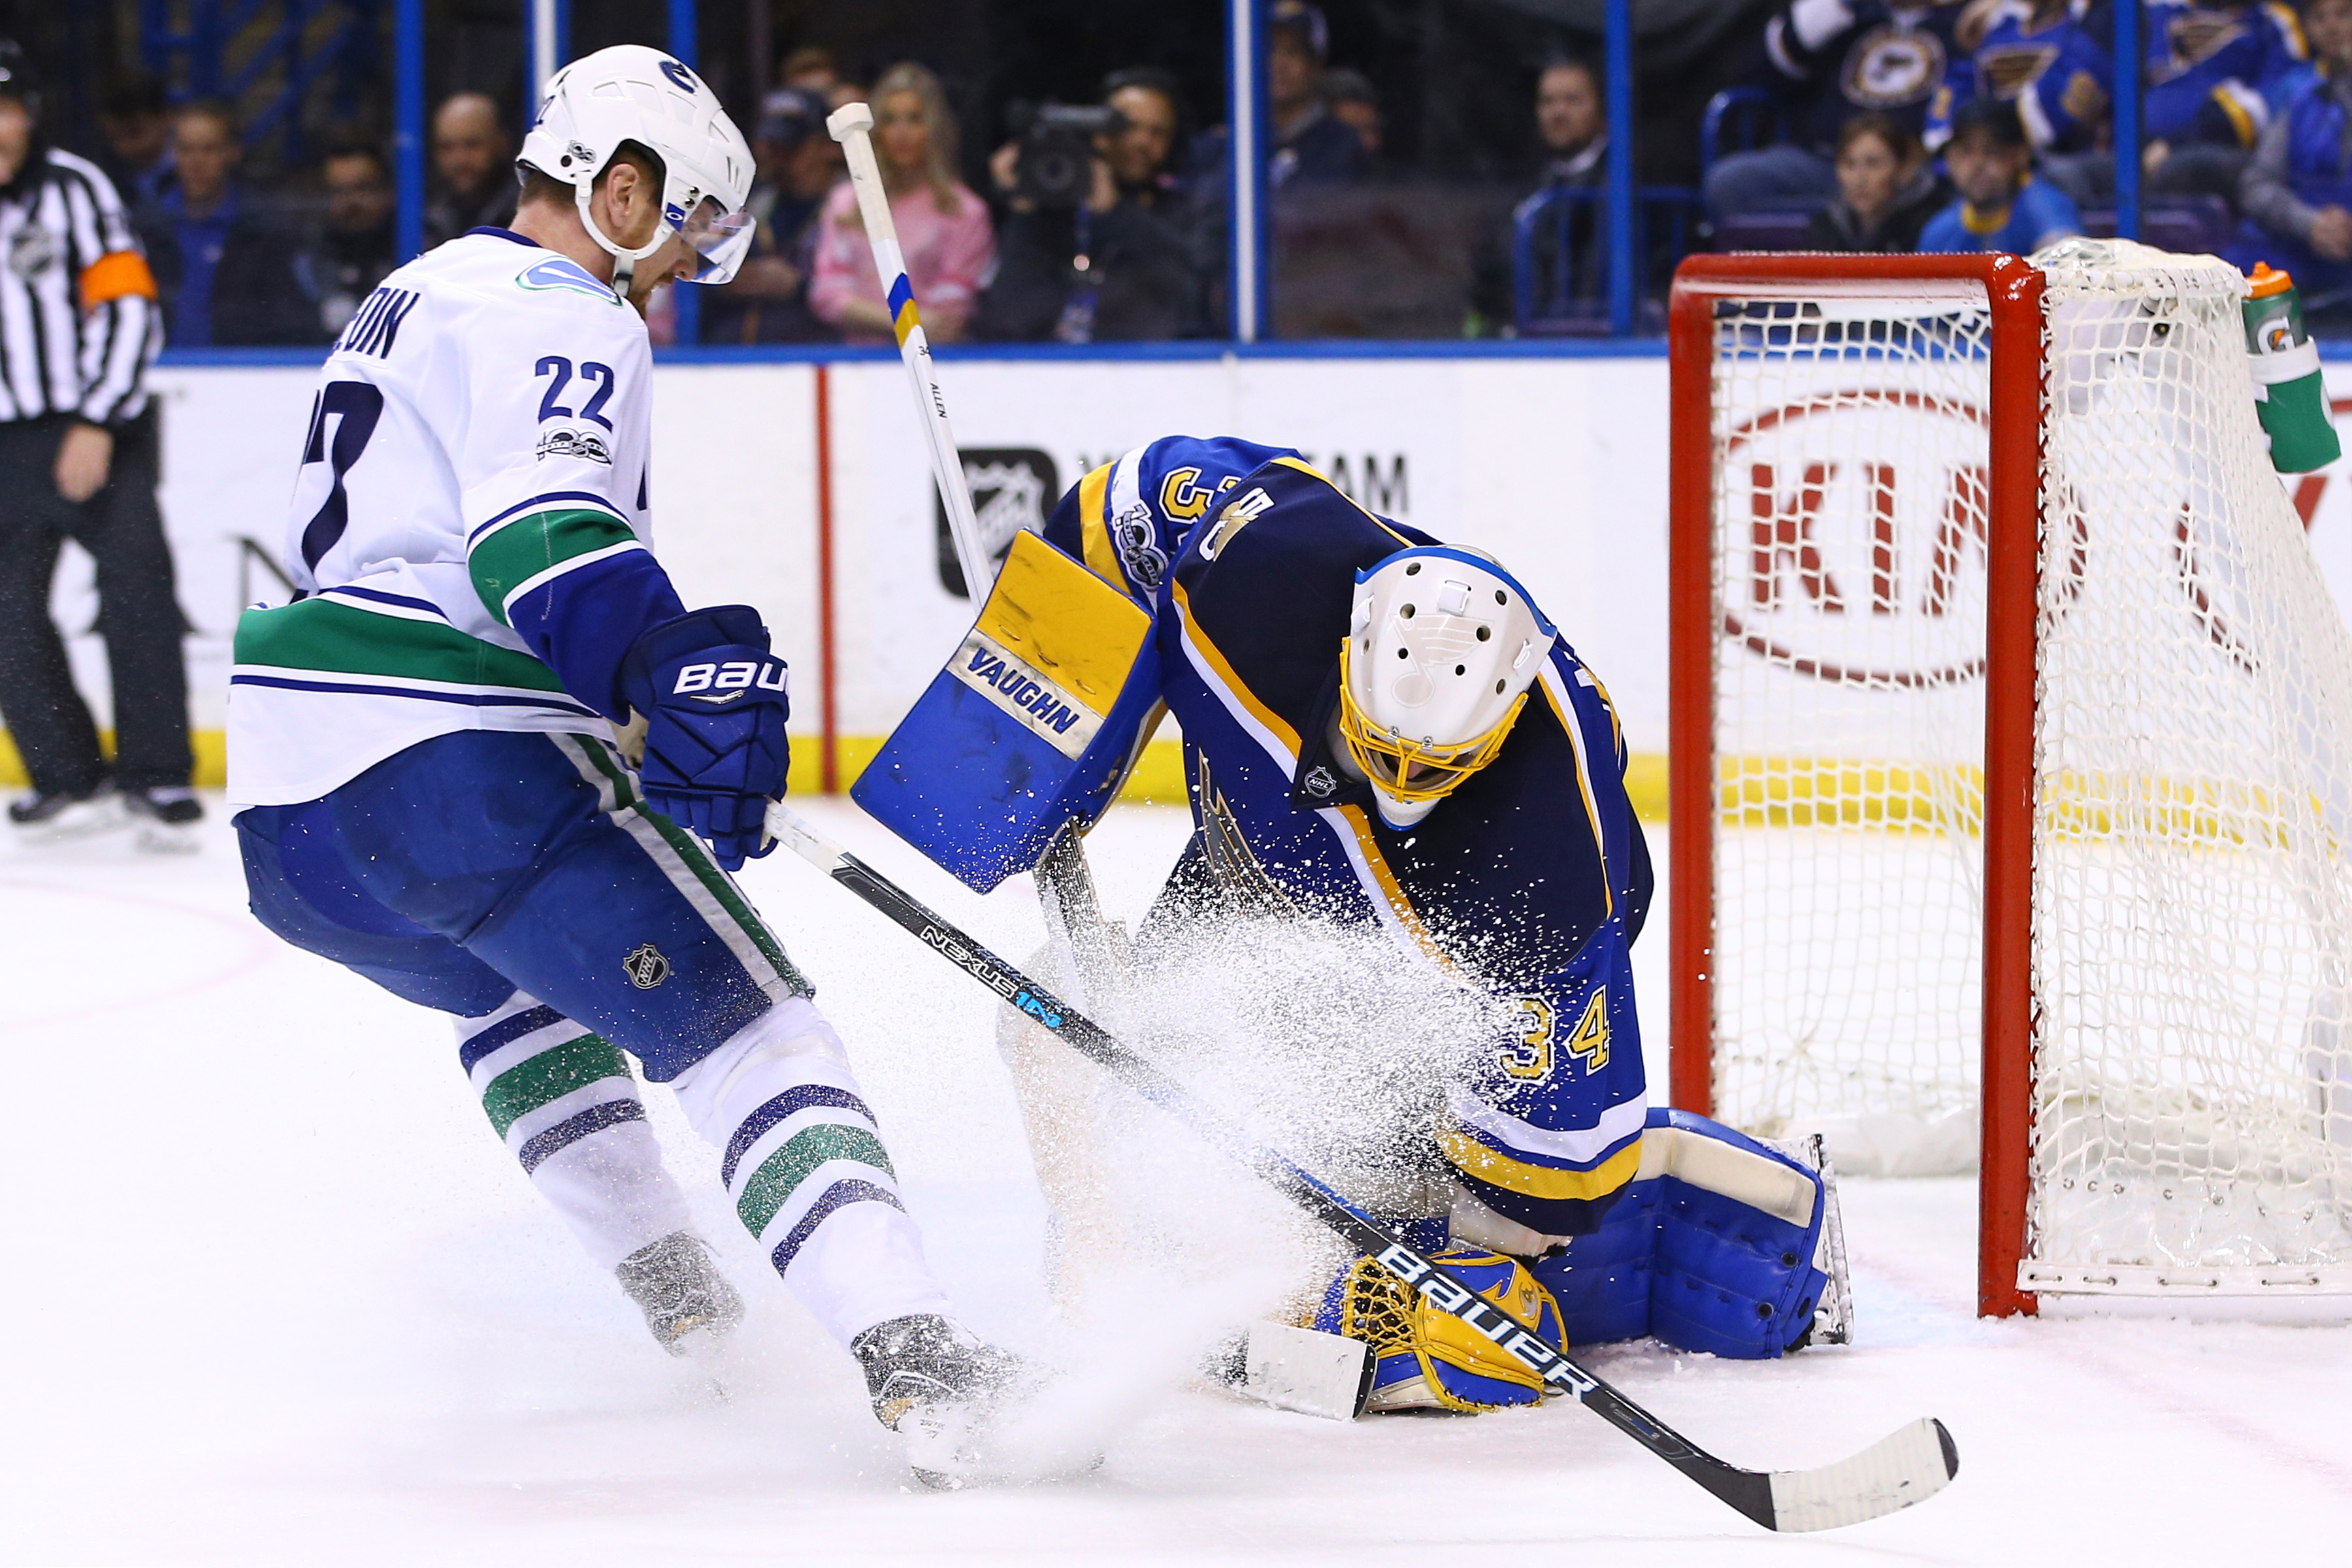 9881578-nhl-vancouver-canucks-at-st.-louis-blues-1